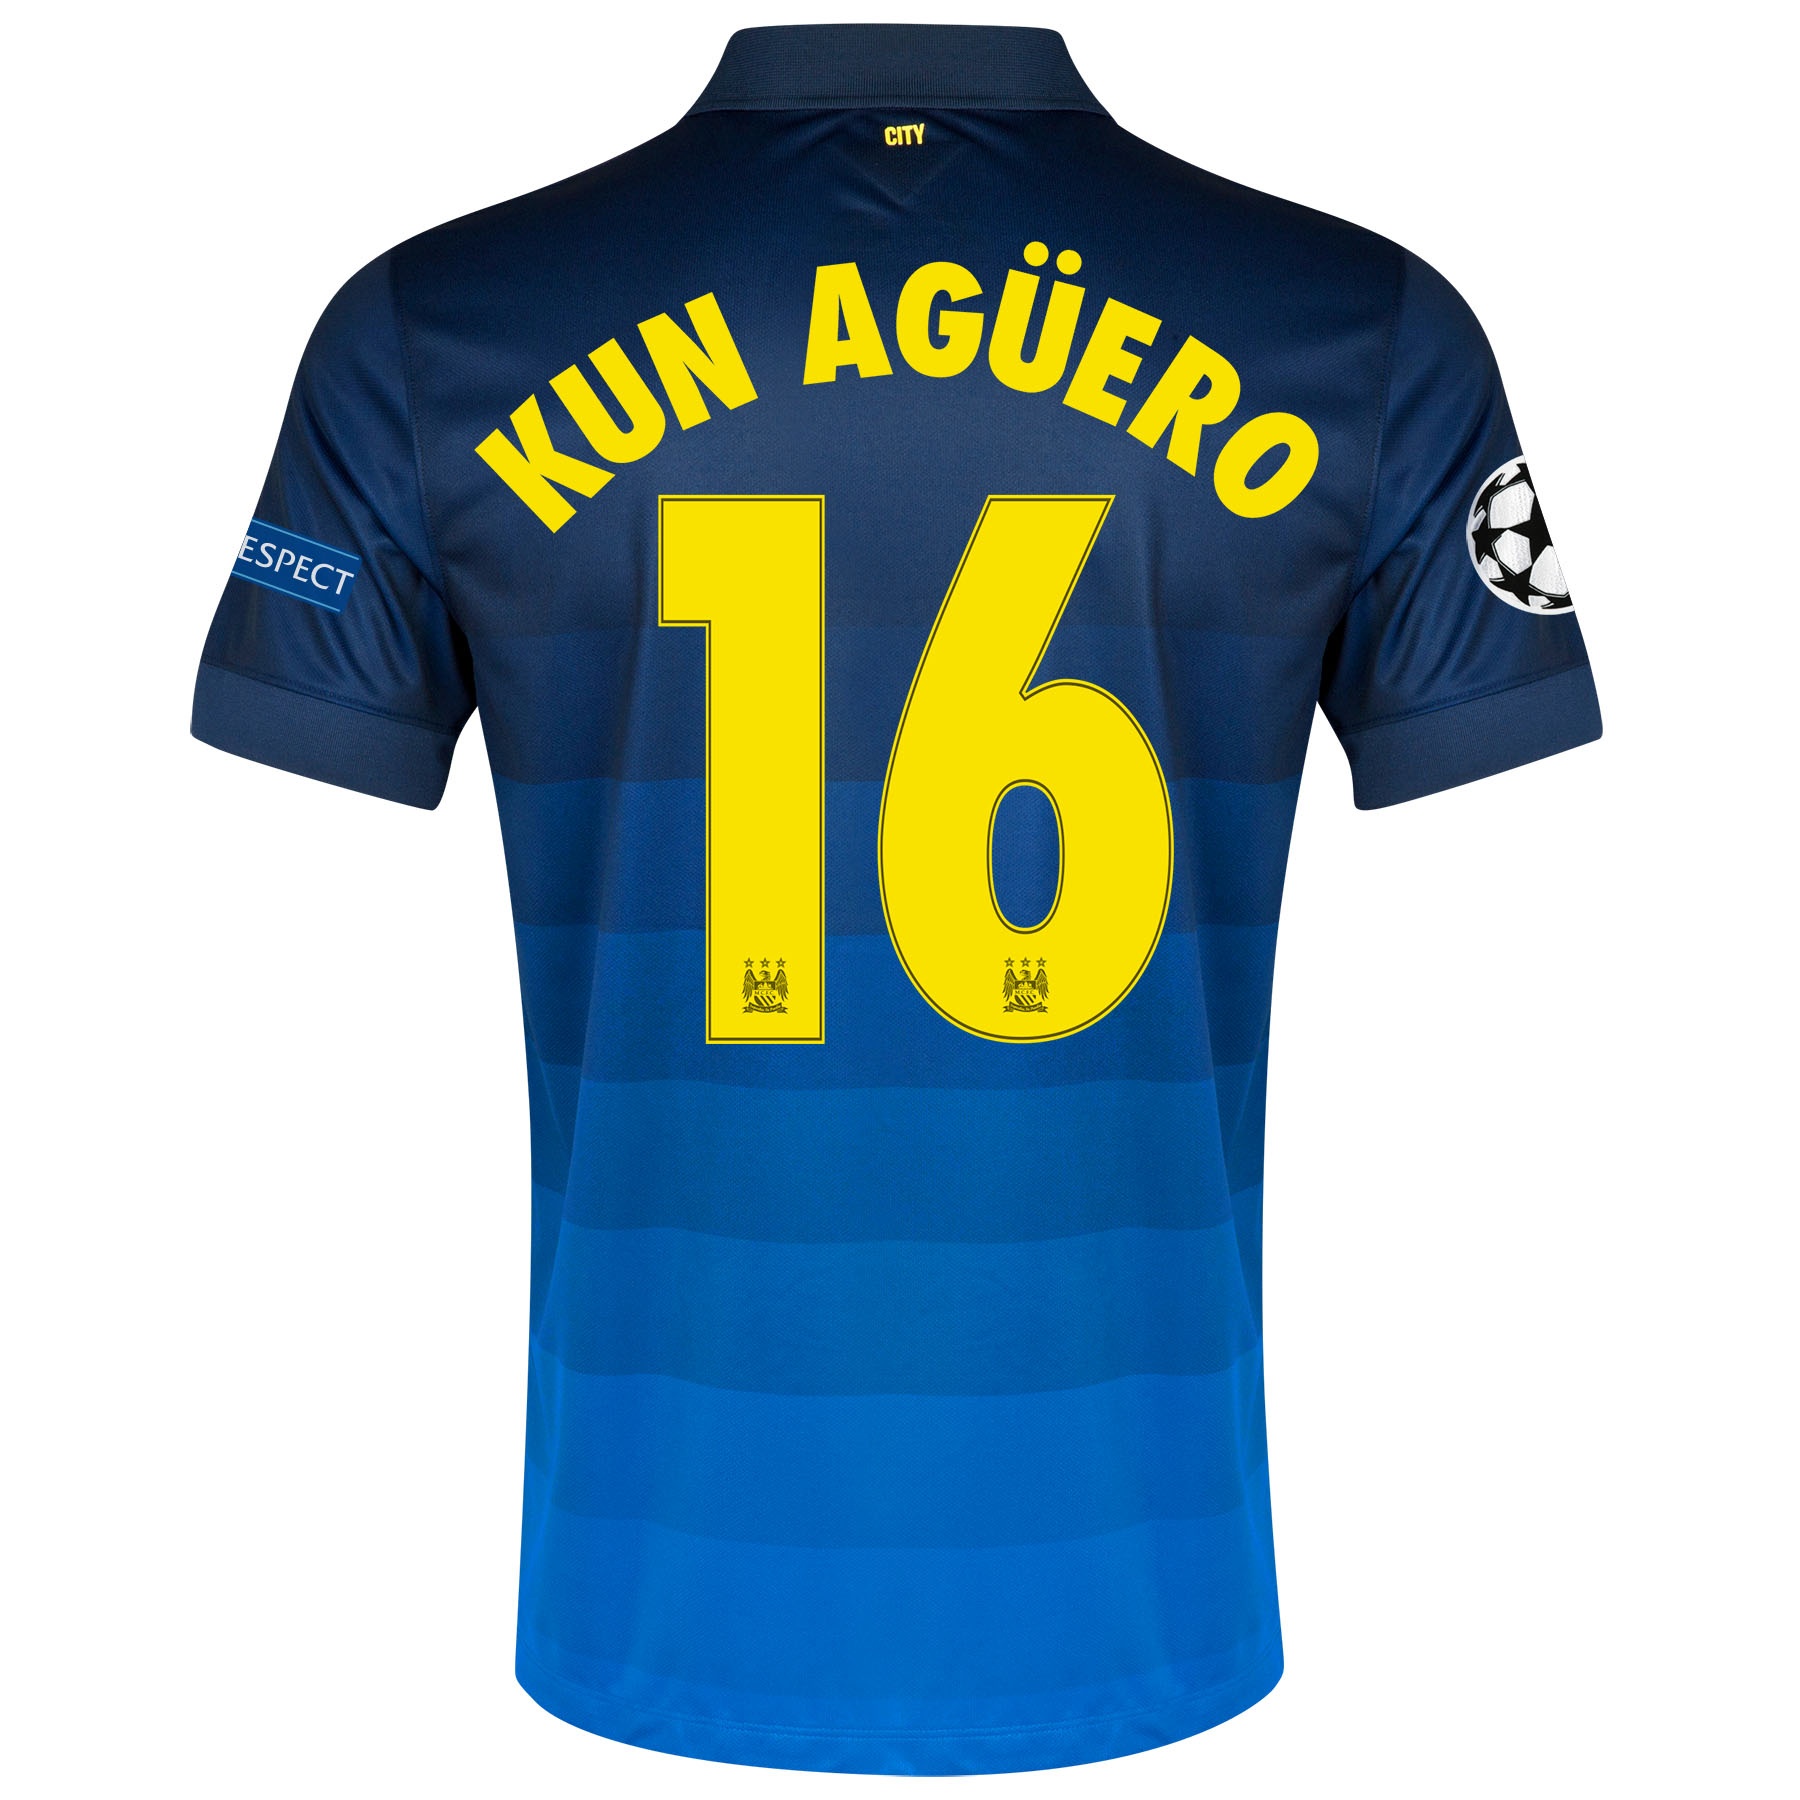 Manchester City UEFA Champions League Away Shirt 2014/15 - Kids with Kun Agüero  16 printing